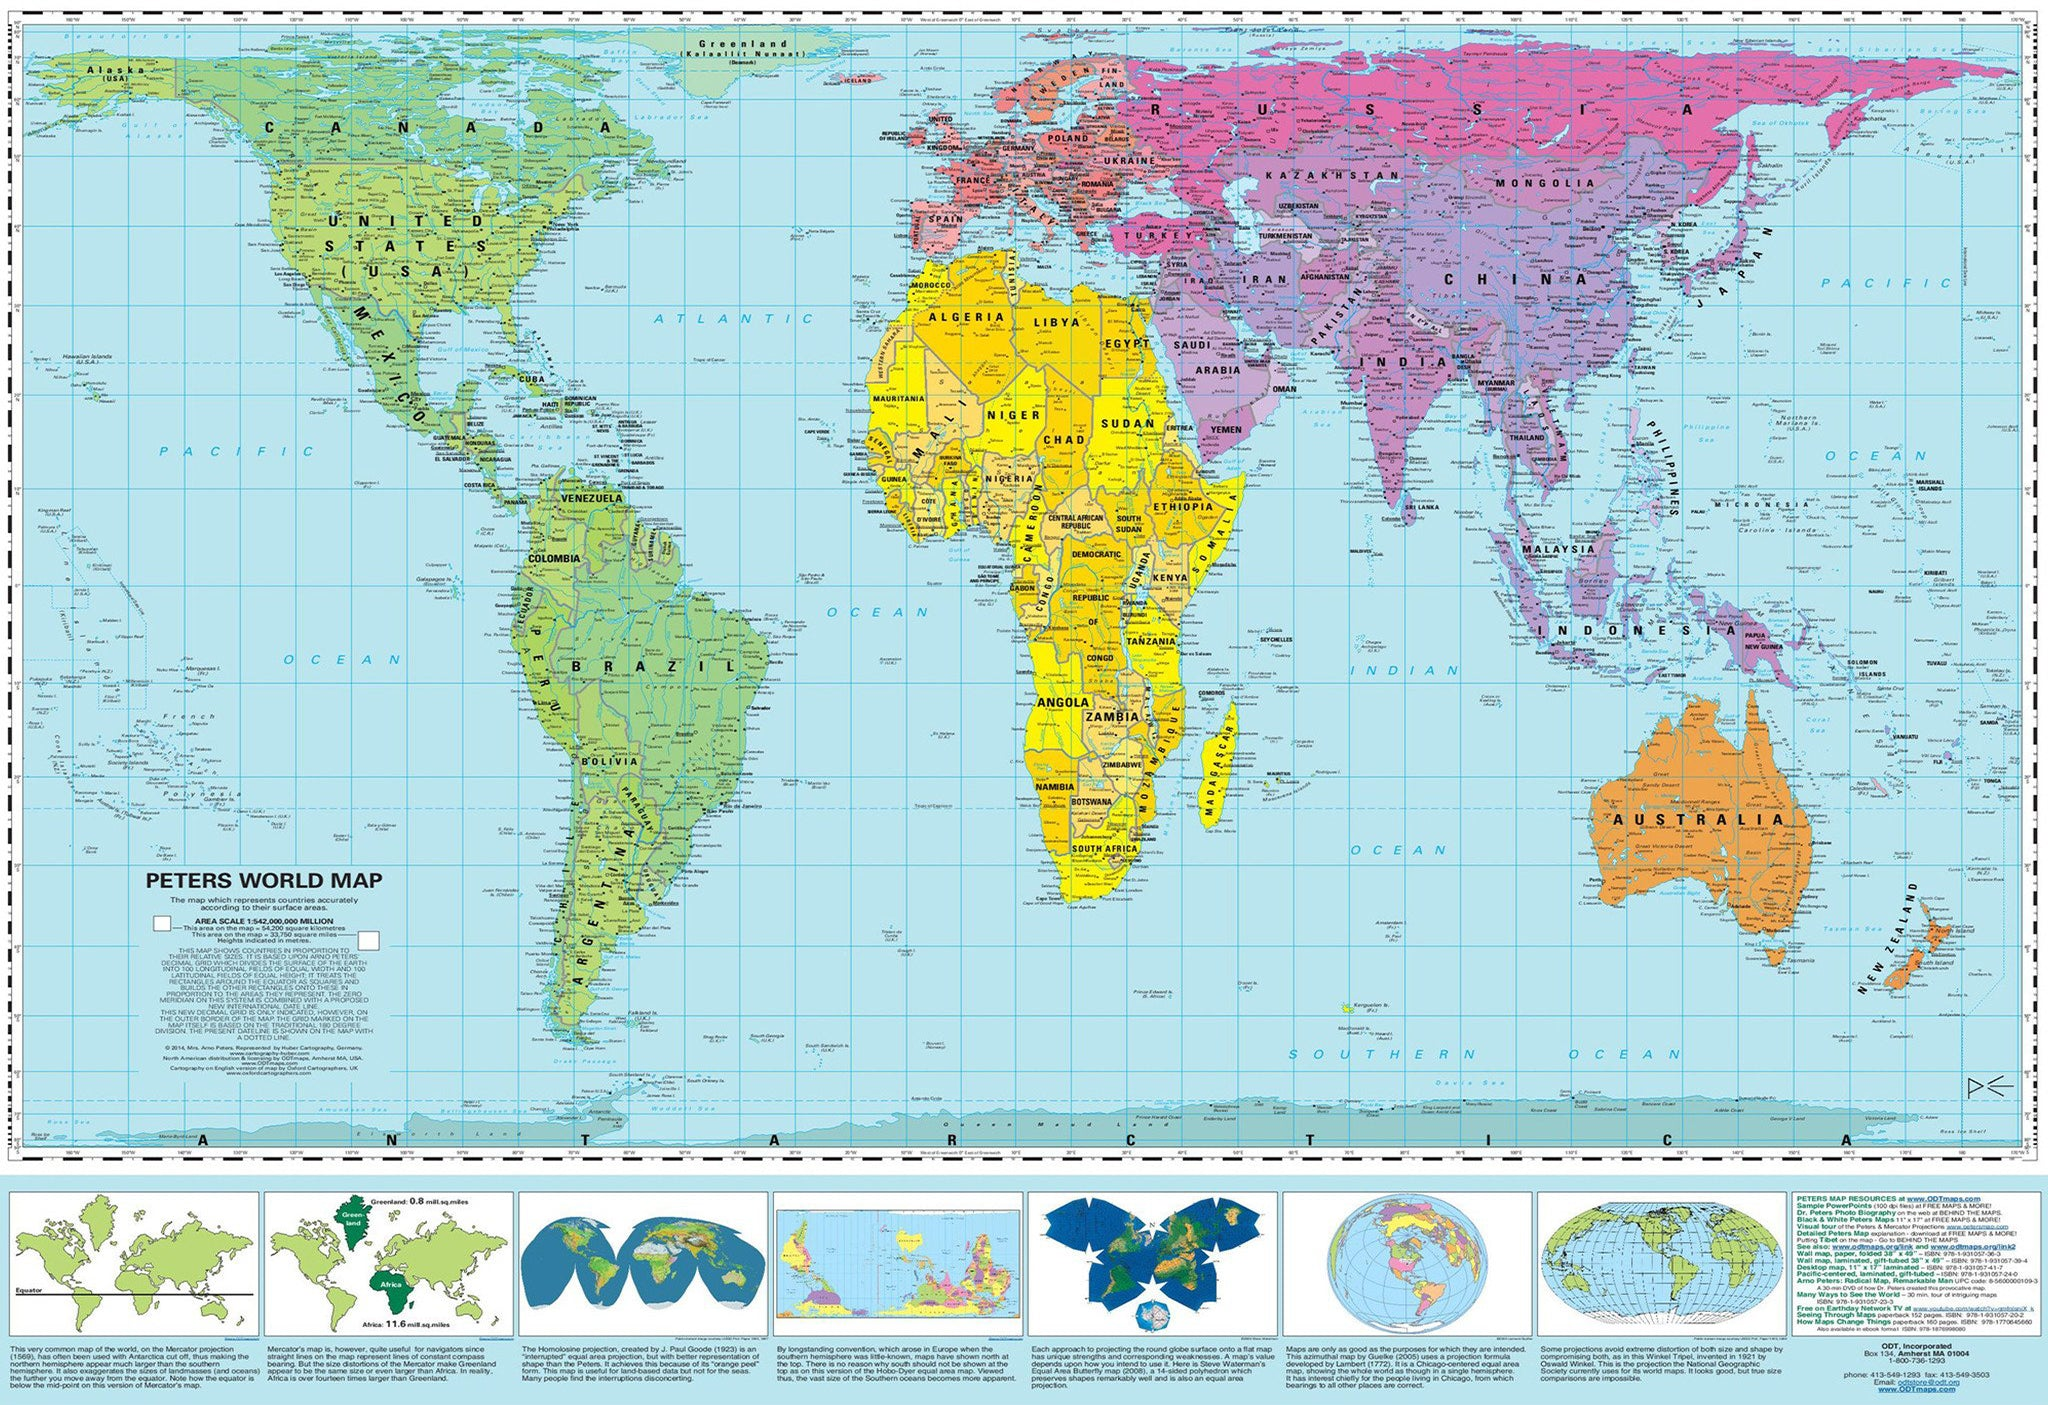 Peters Equal Area World Wall Map, Buy Peters World Map - Mapworld on